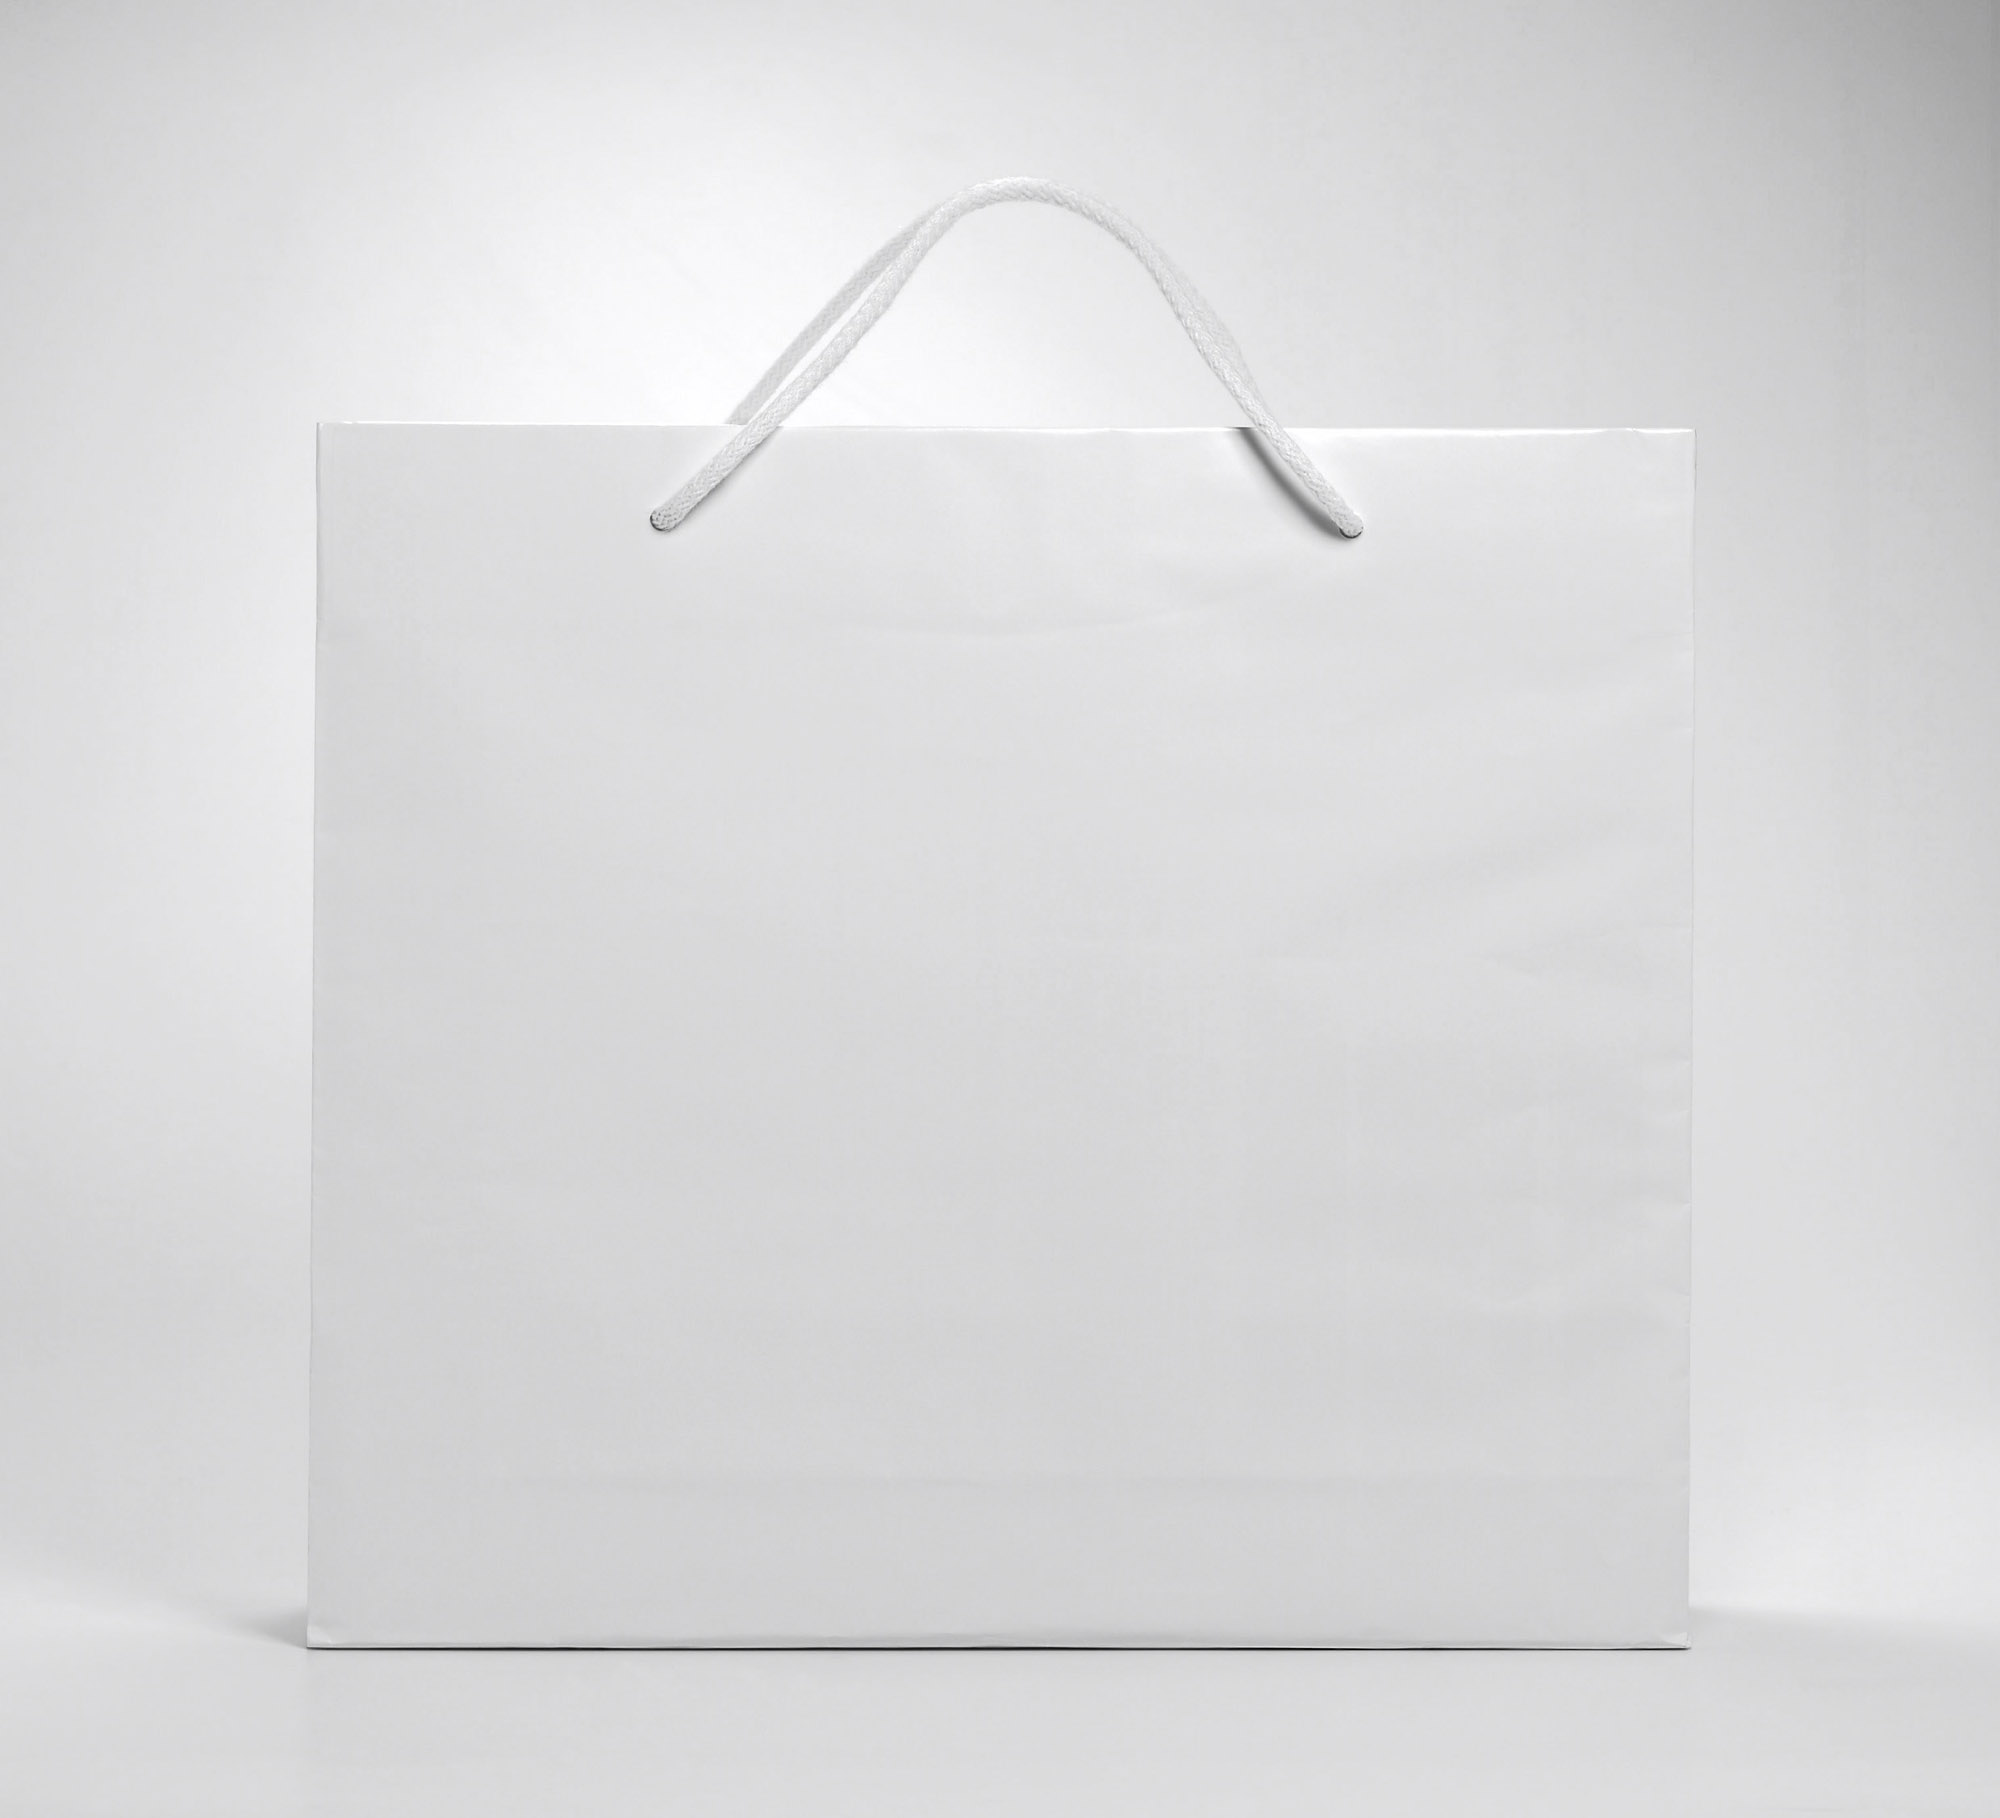 Blank shopping bags 386 - Blank item - Others